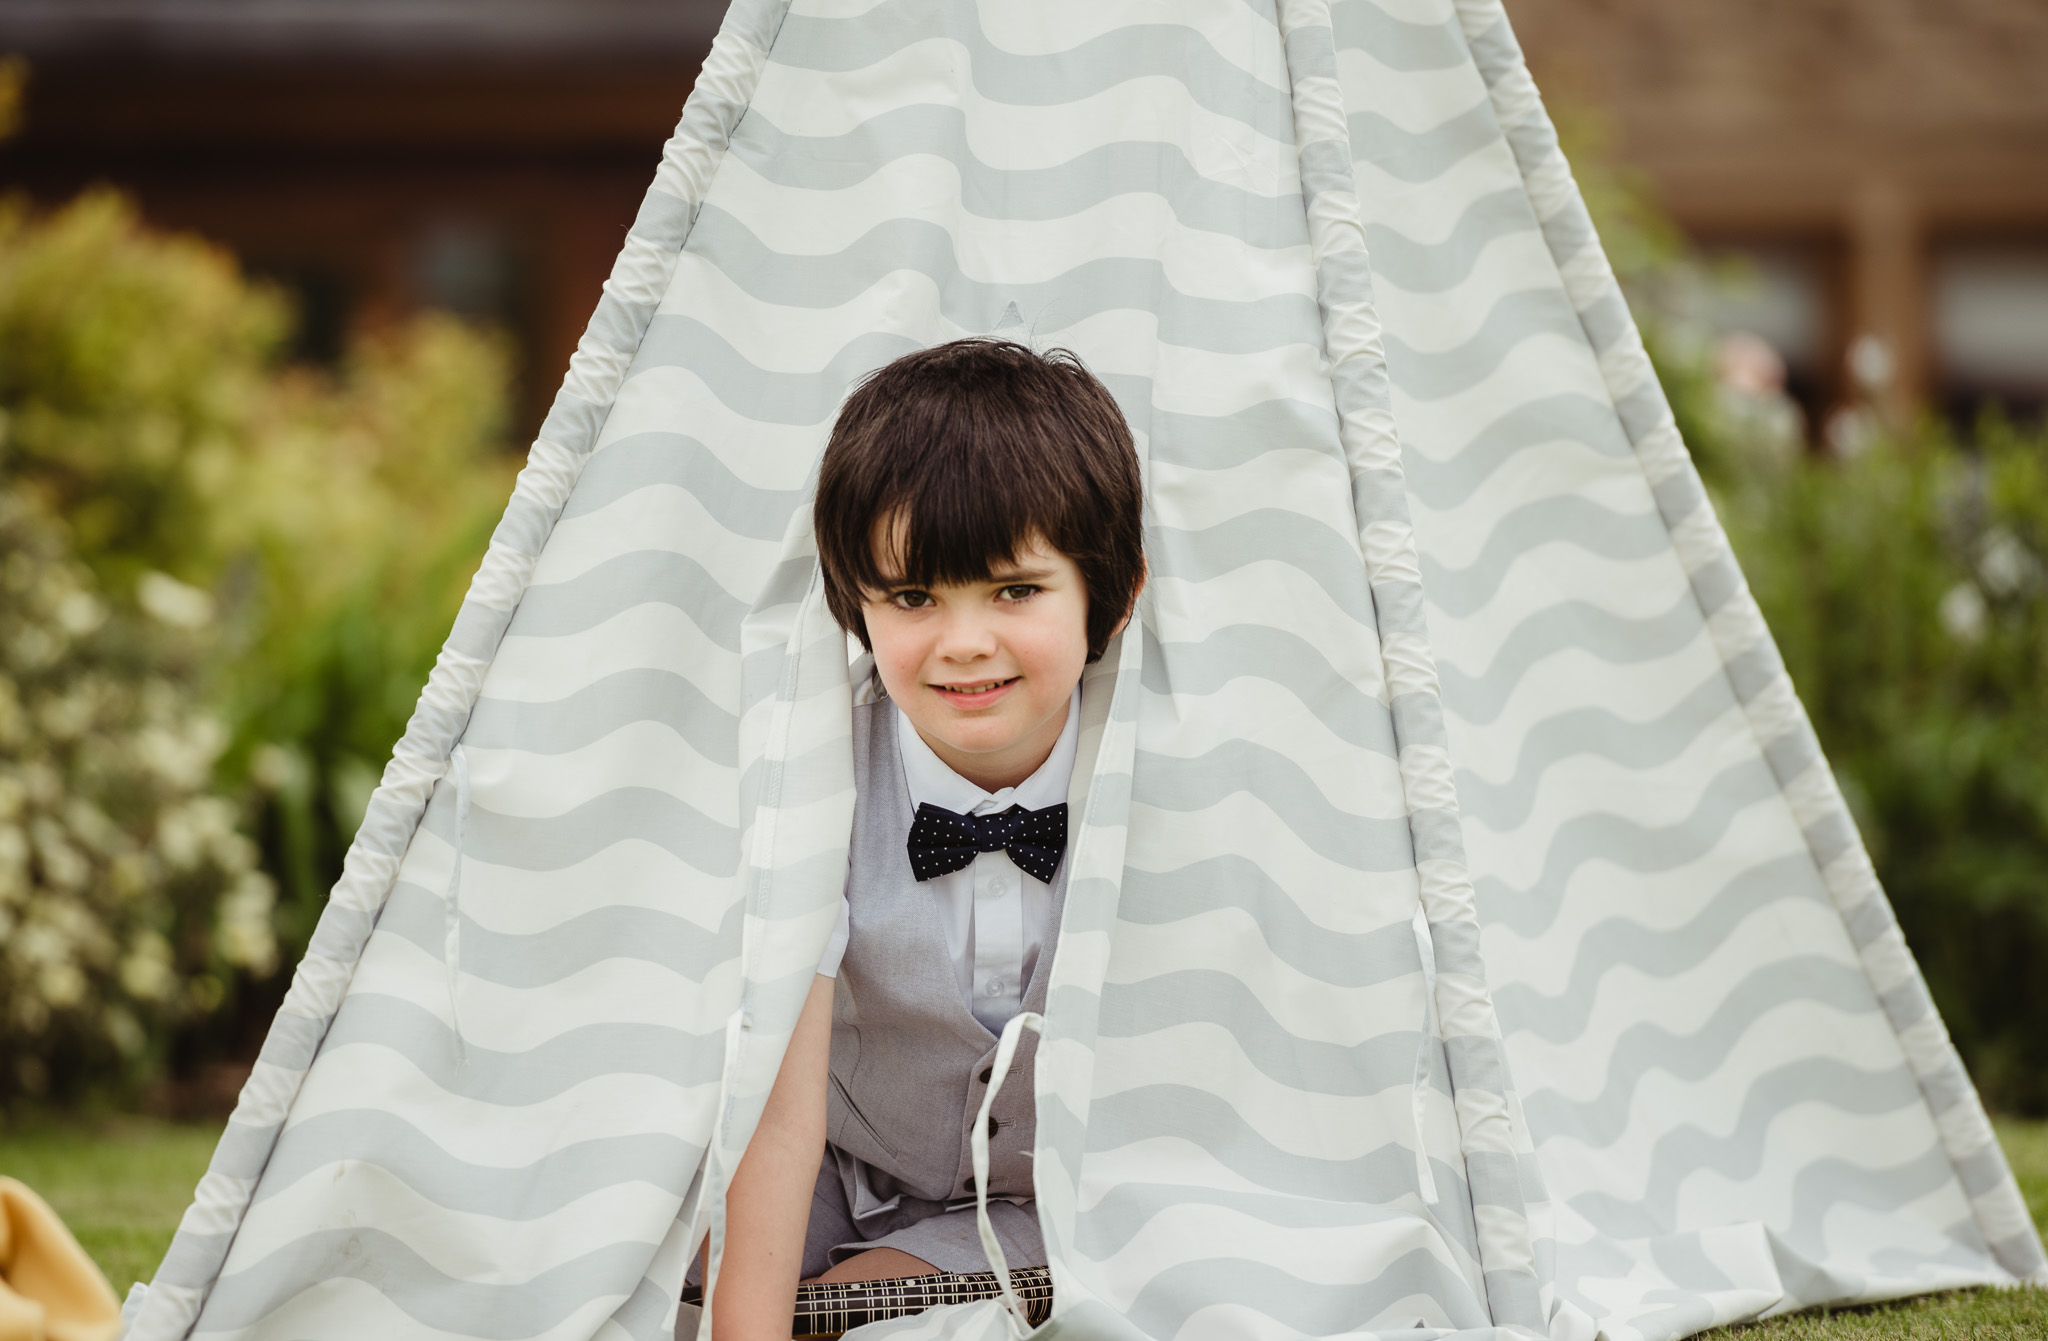 boy smiling in tipi